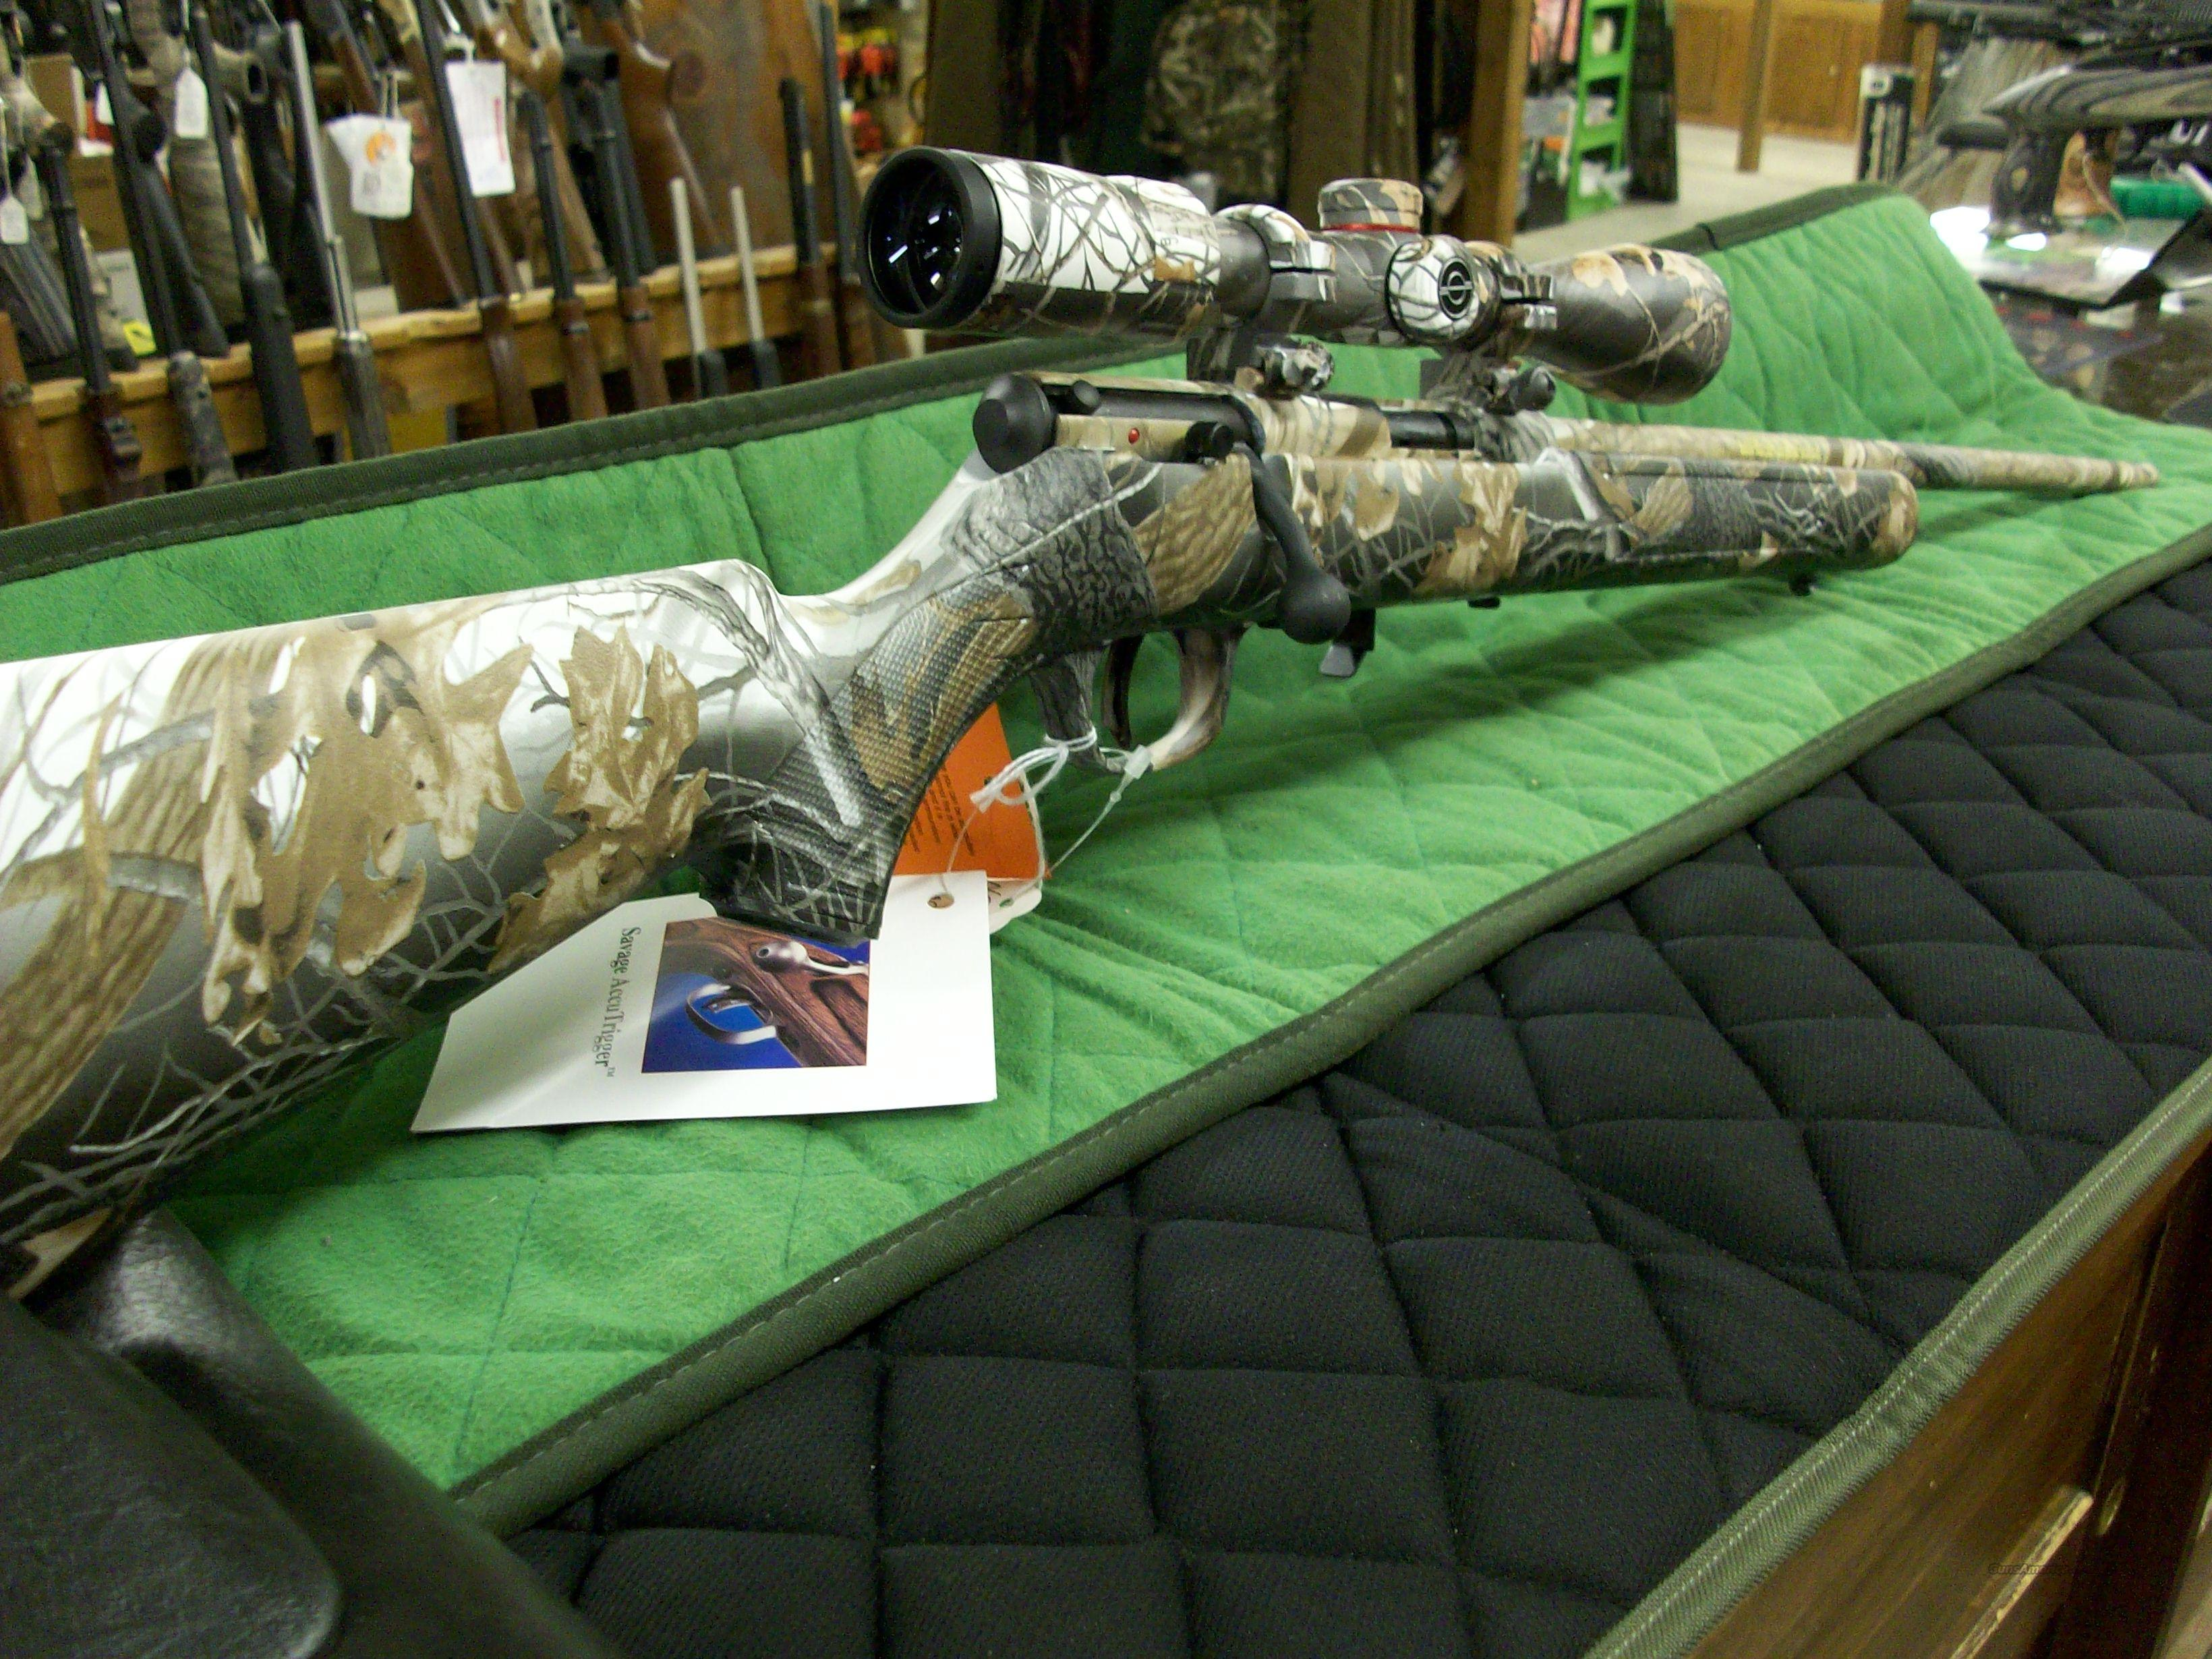 Savage 93R17XP Snow Camo 17 HMR  **NEW**  Guns > Rifles > Savage Rifles > Accutrigger Models > Sporting